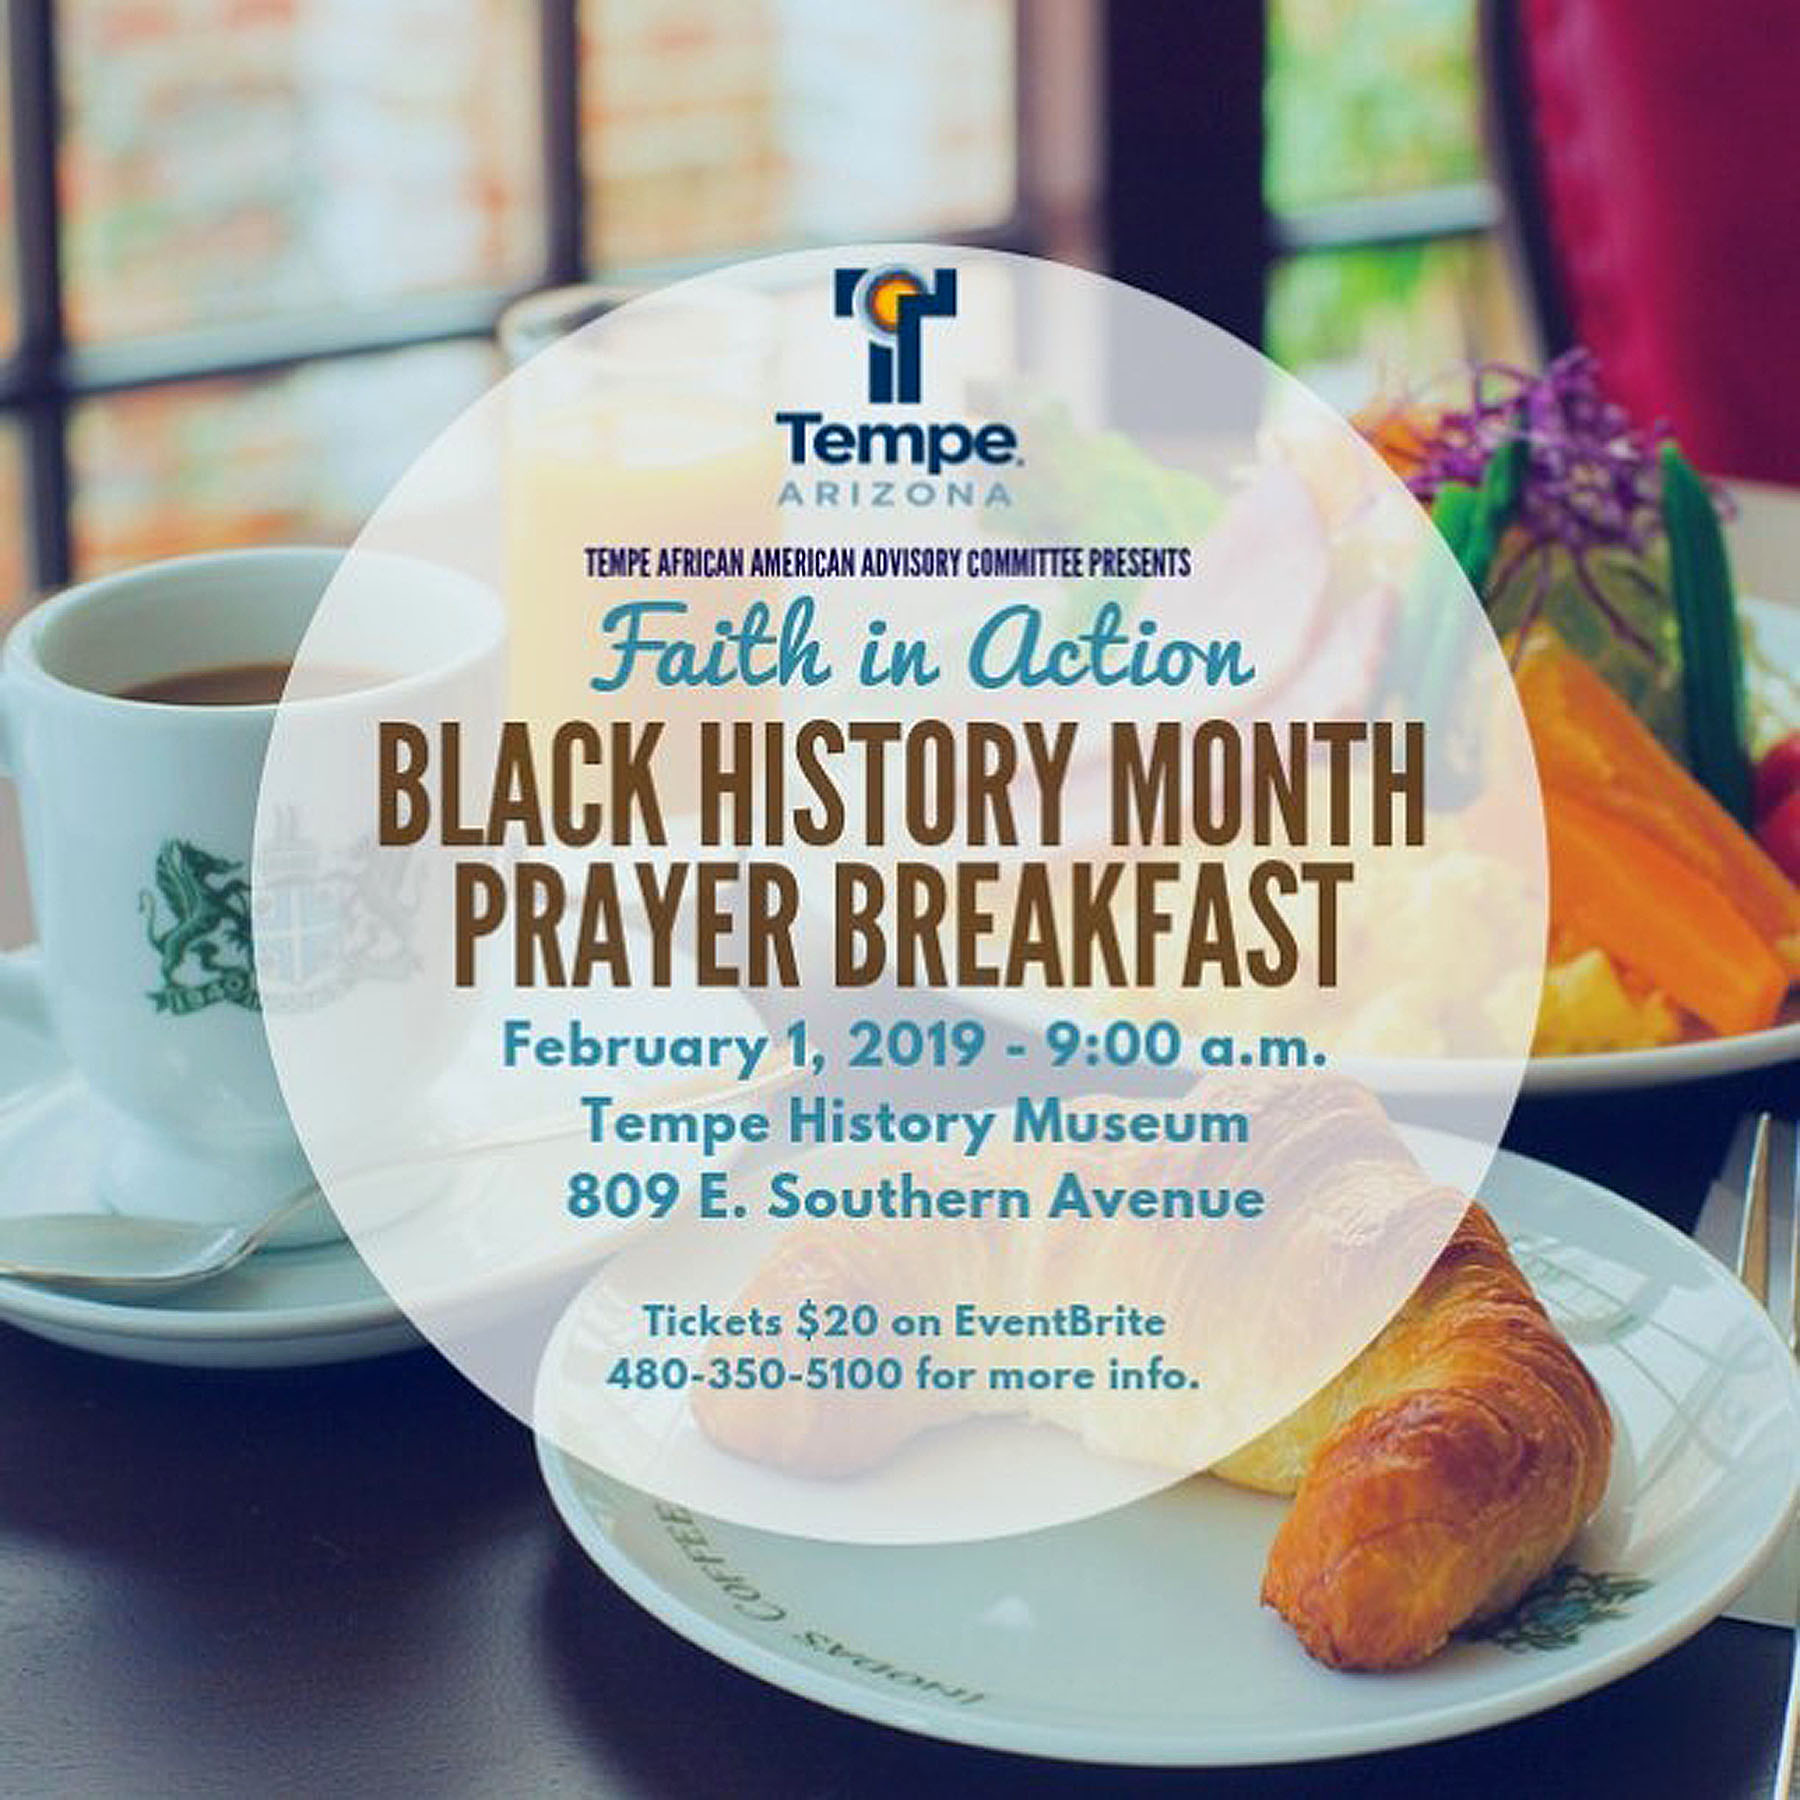 Feb 1 BHM breakfast